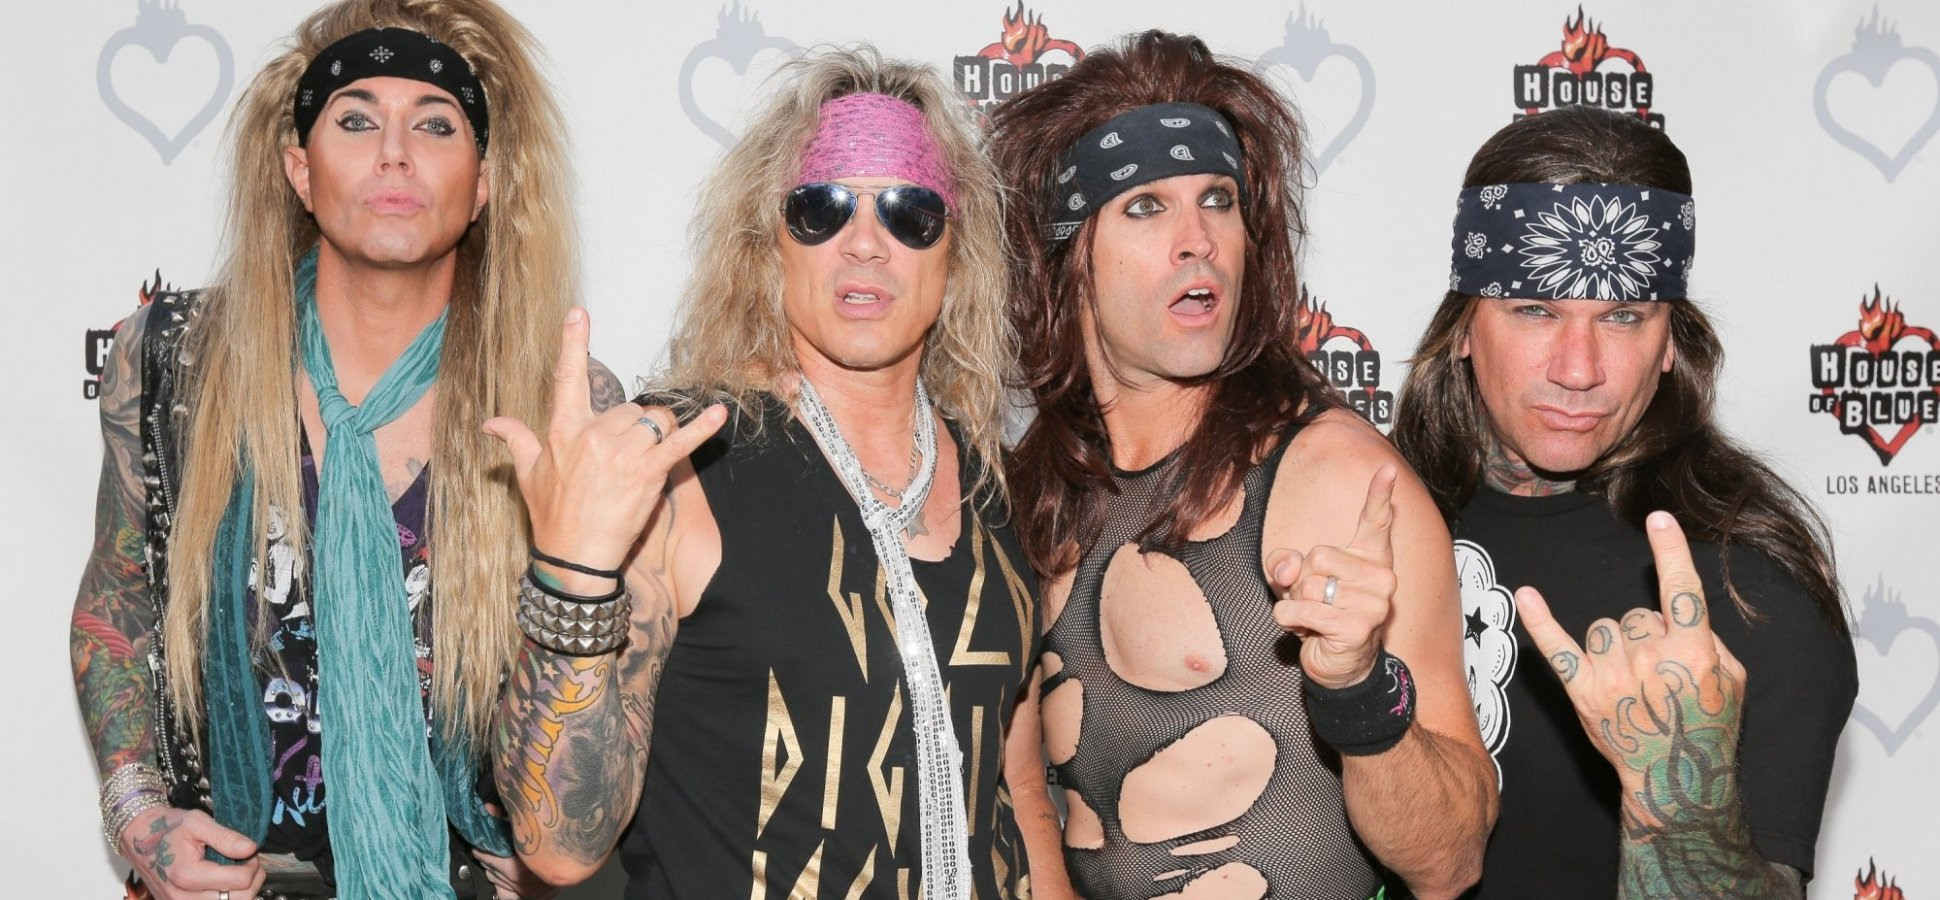 When Self-Management Is the Best Management: How Steel Panther Makes Music, Entertains Fans, and Runs a Thriving Business